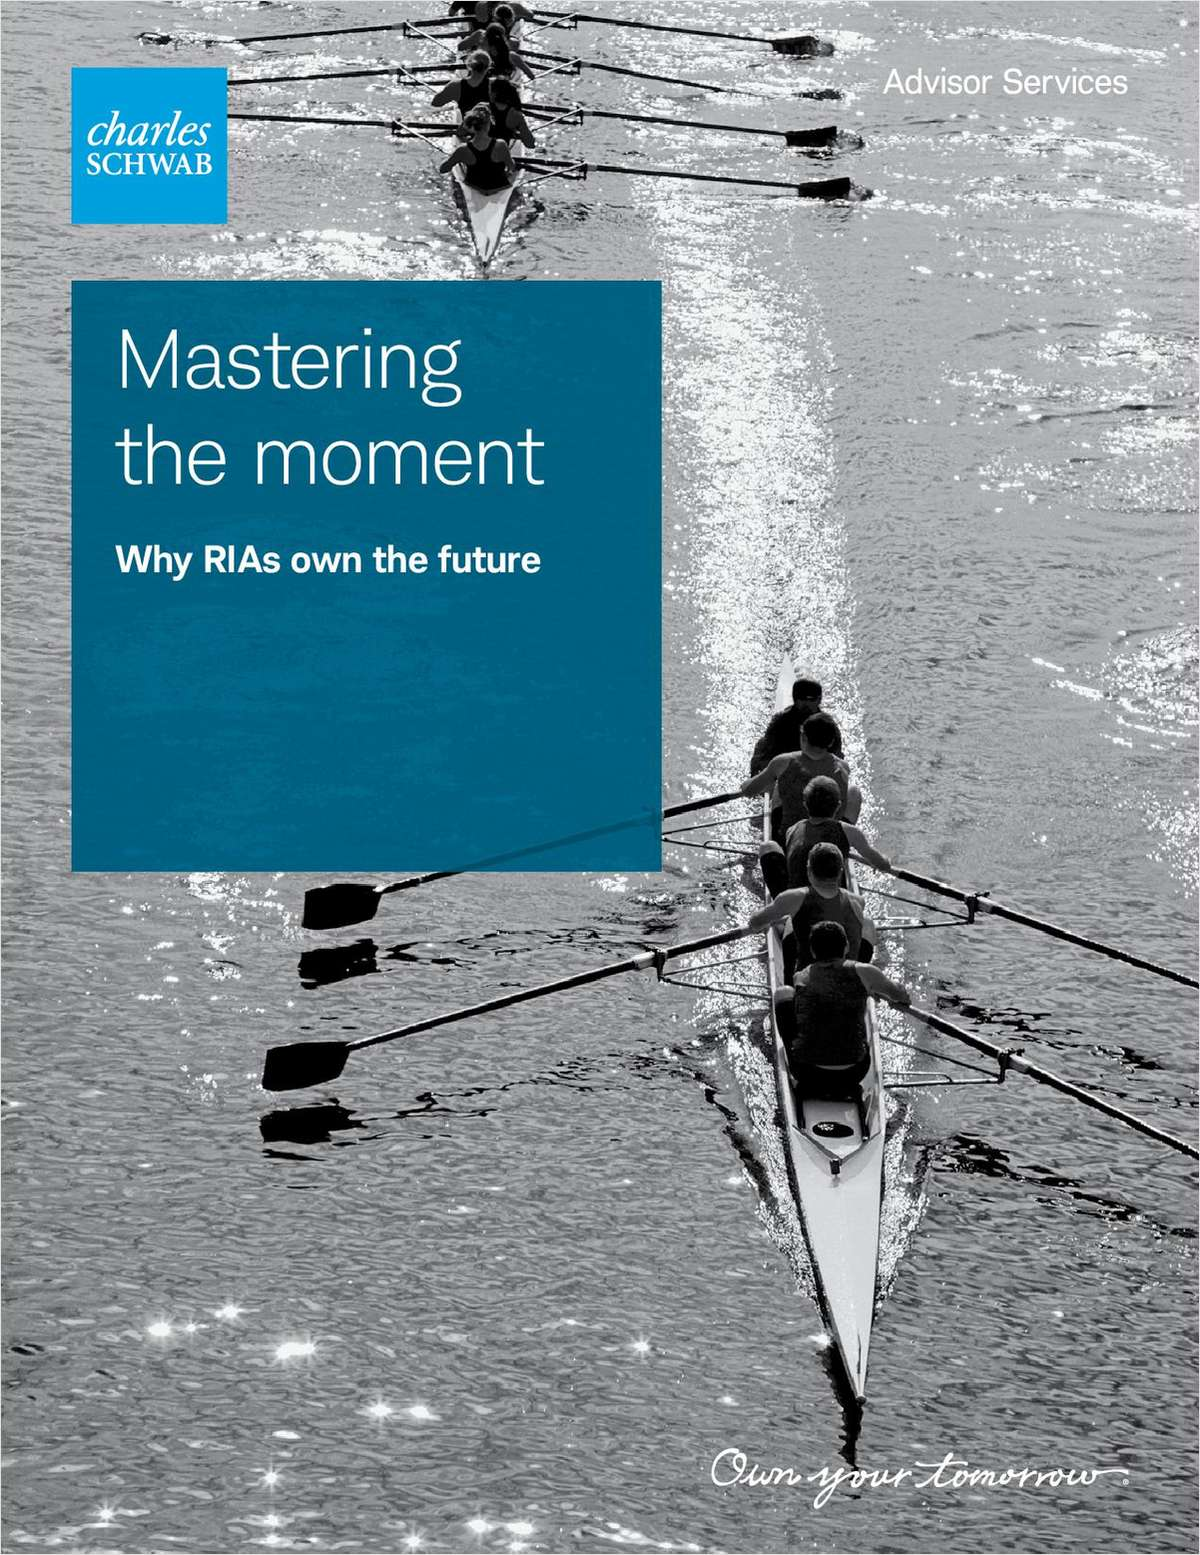 RIAs are reinventing the industry. It's your turn.